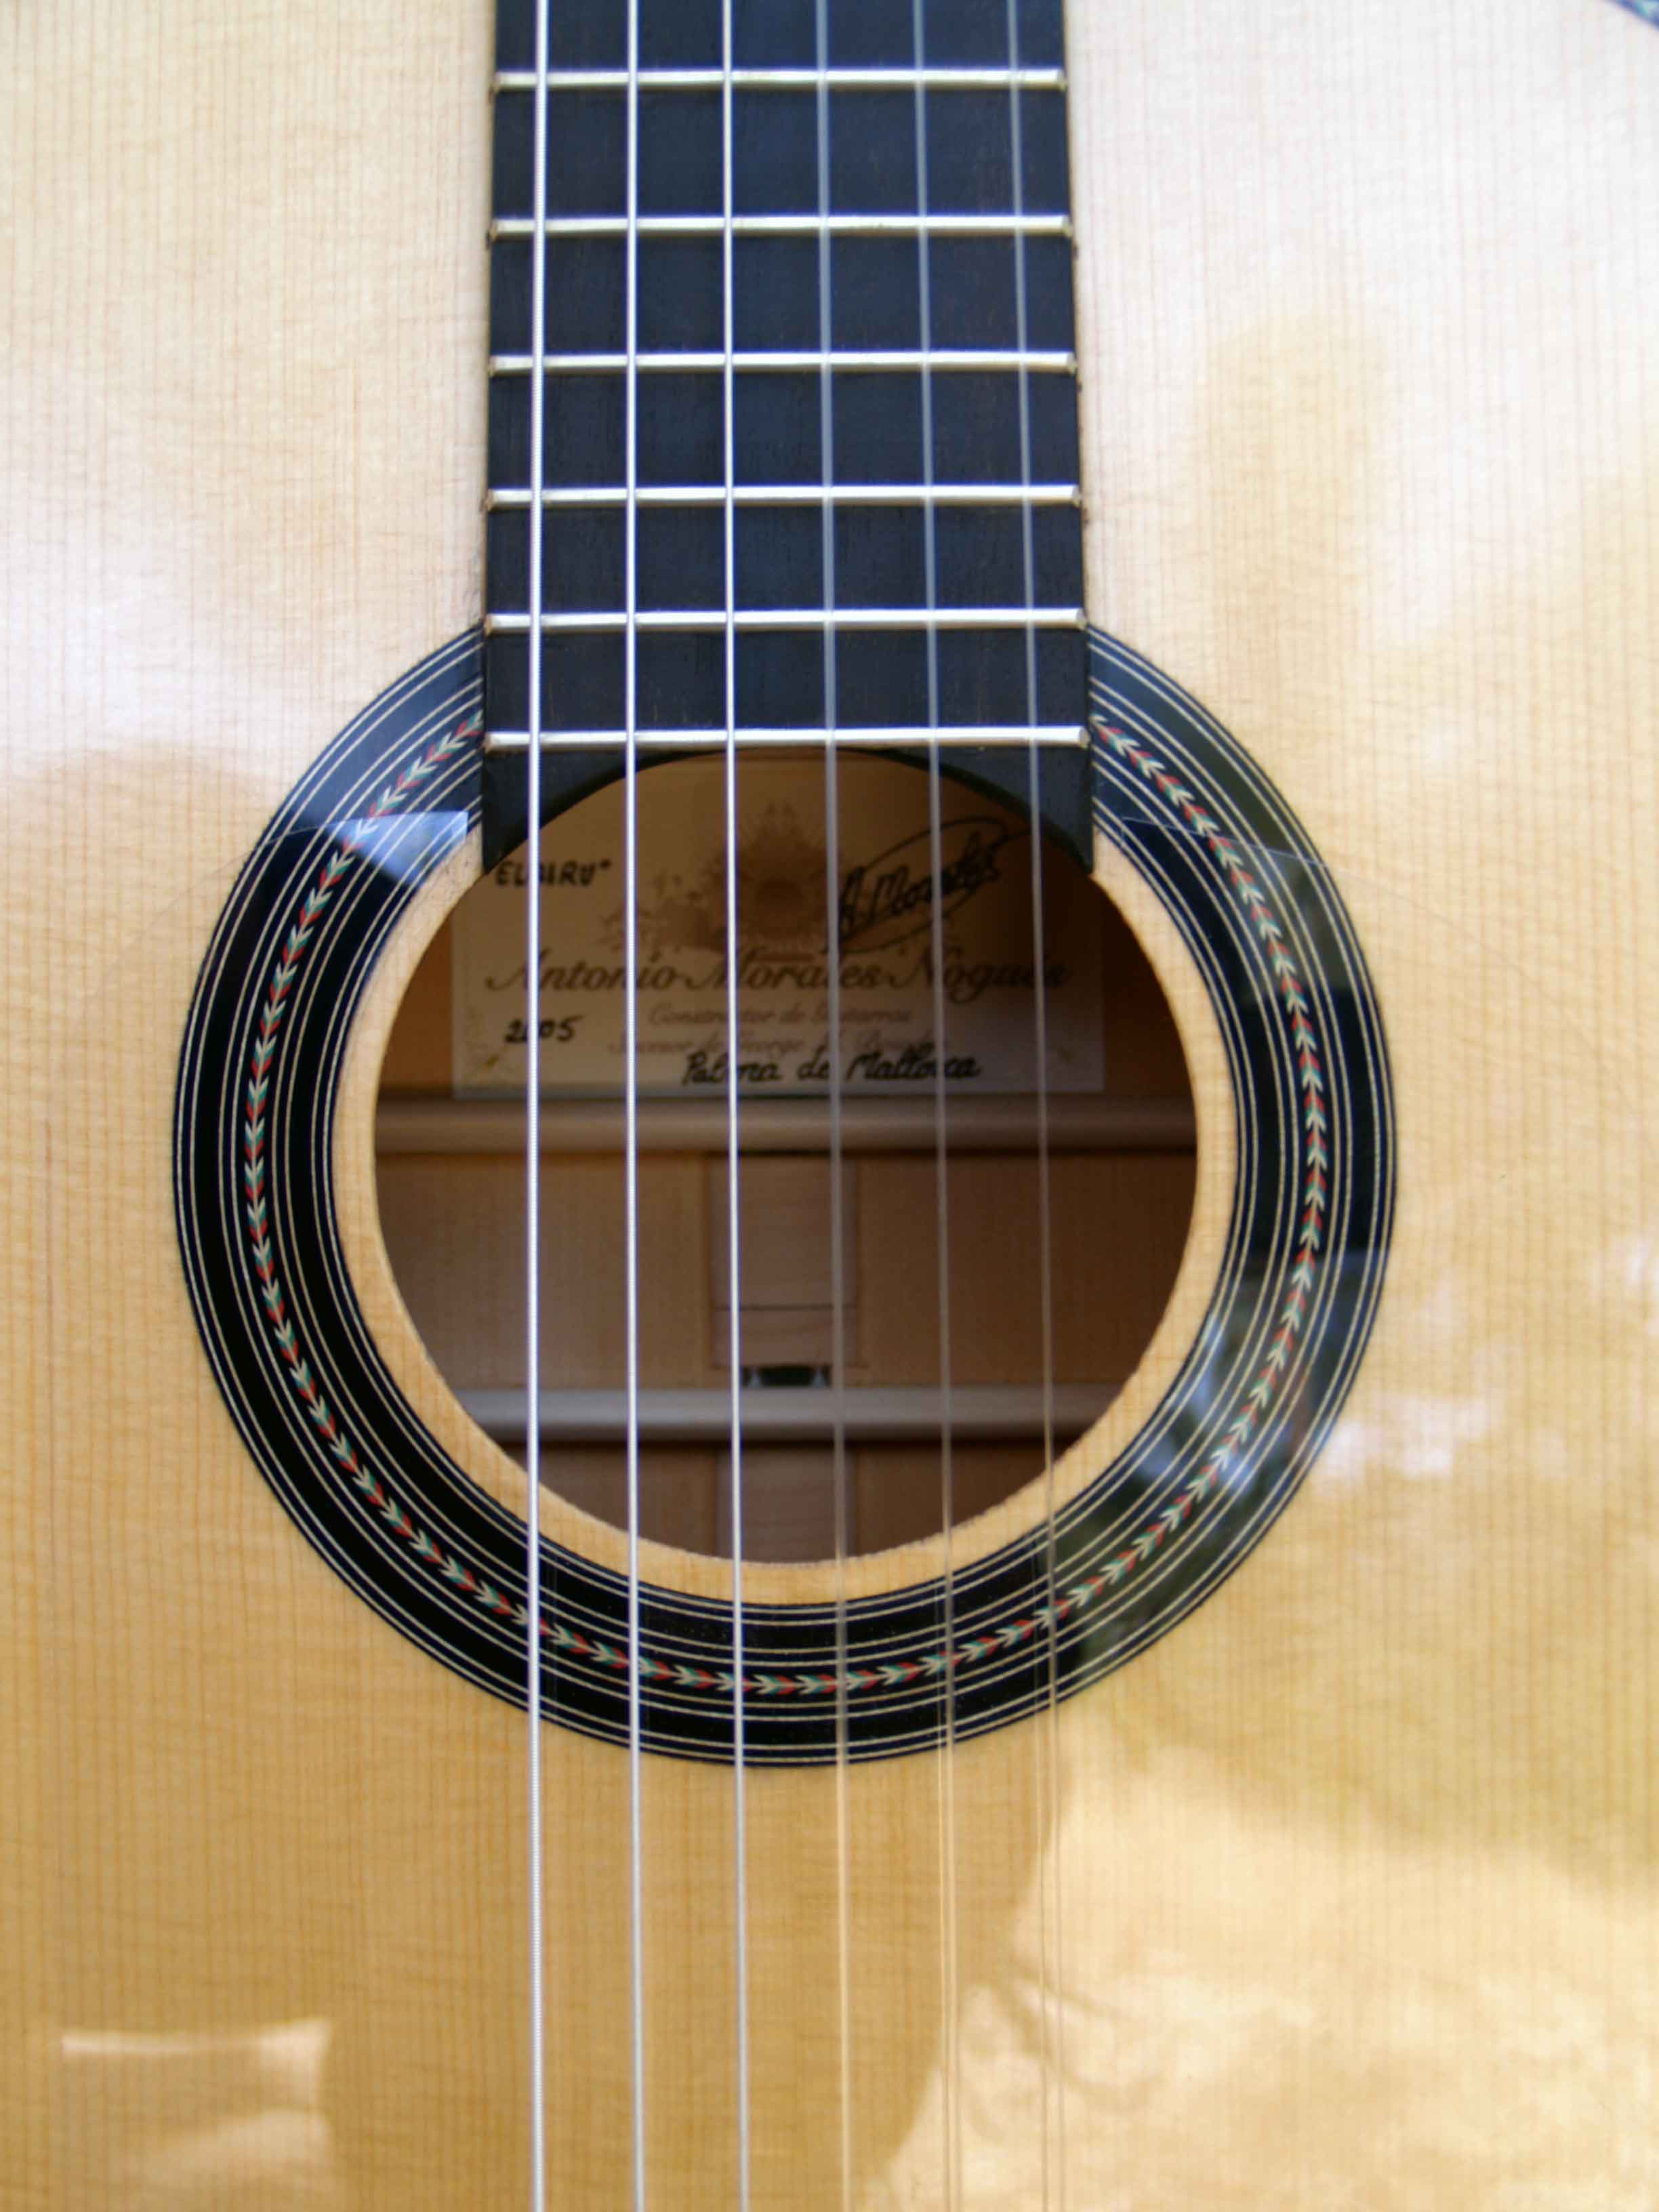 Flamenco guitar spikes rosette